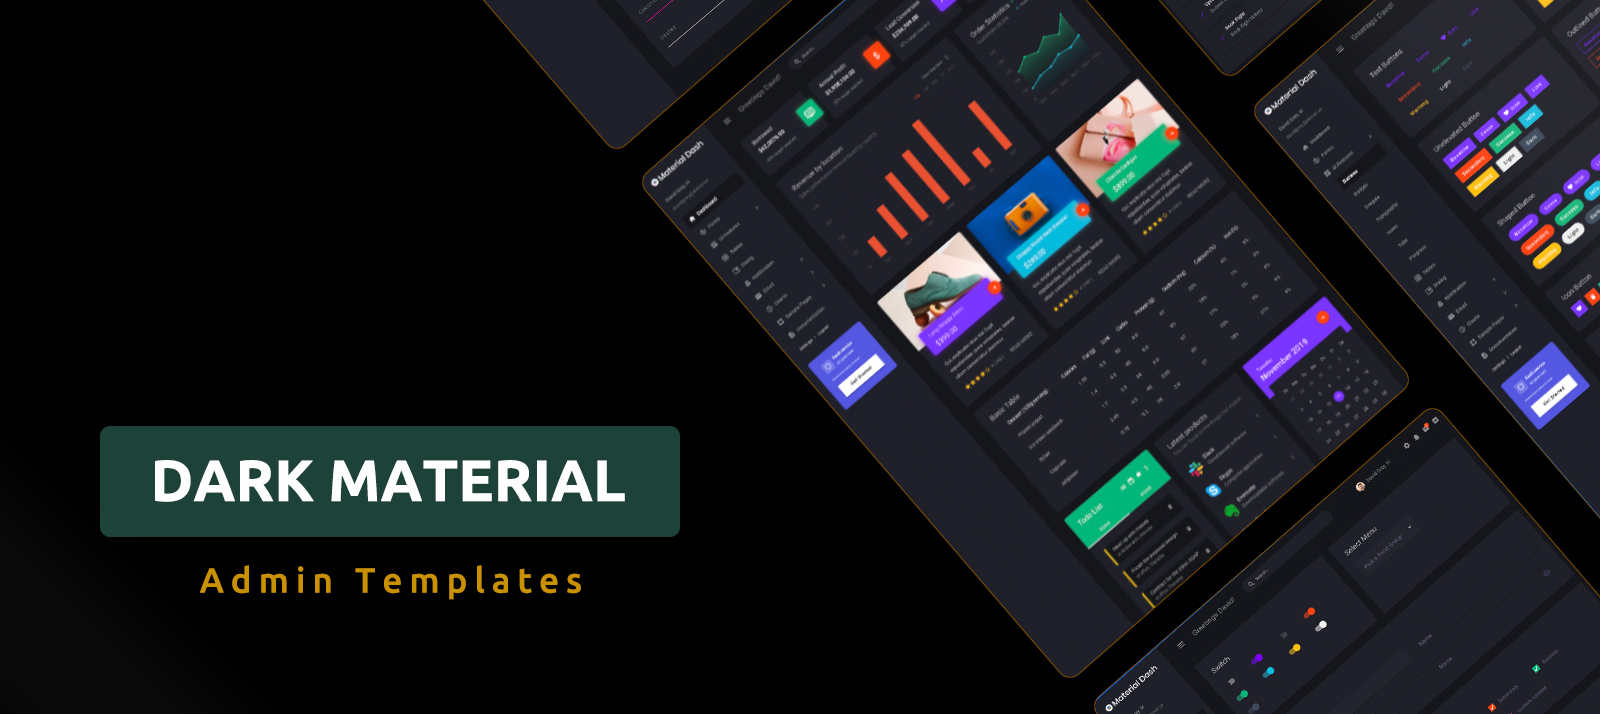 Dark Material Design Admin Templates You Do Not Want To Miss Out in 2020